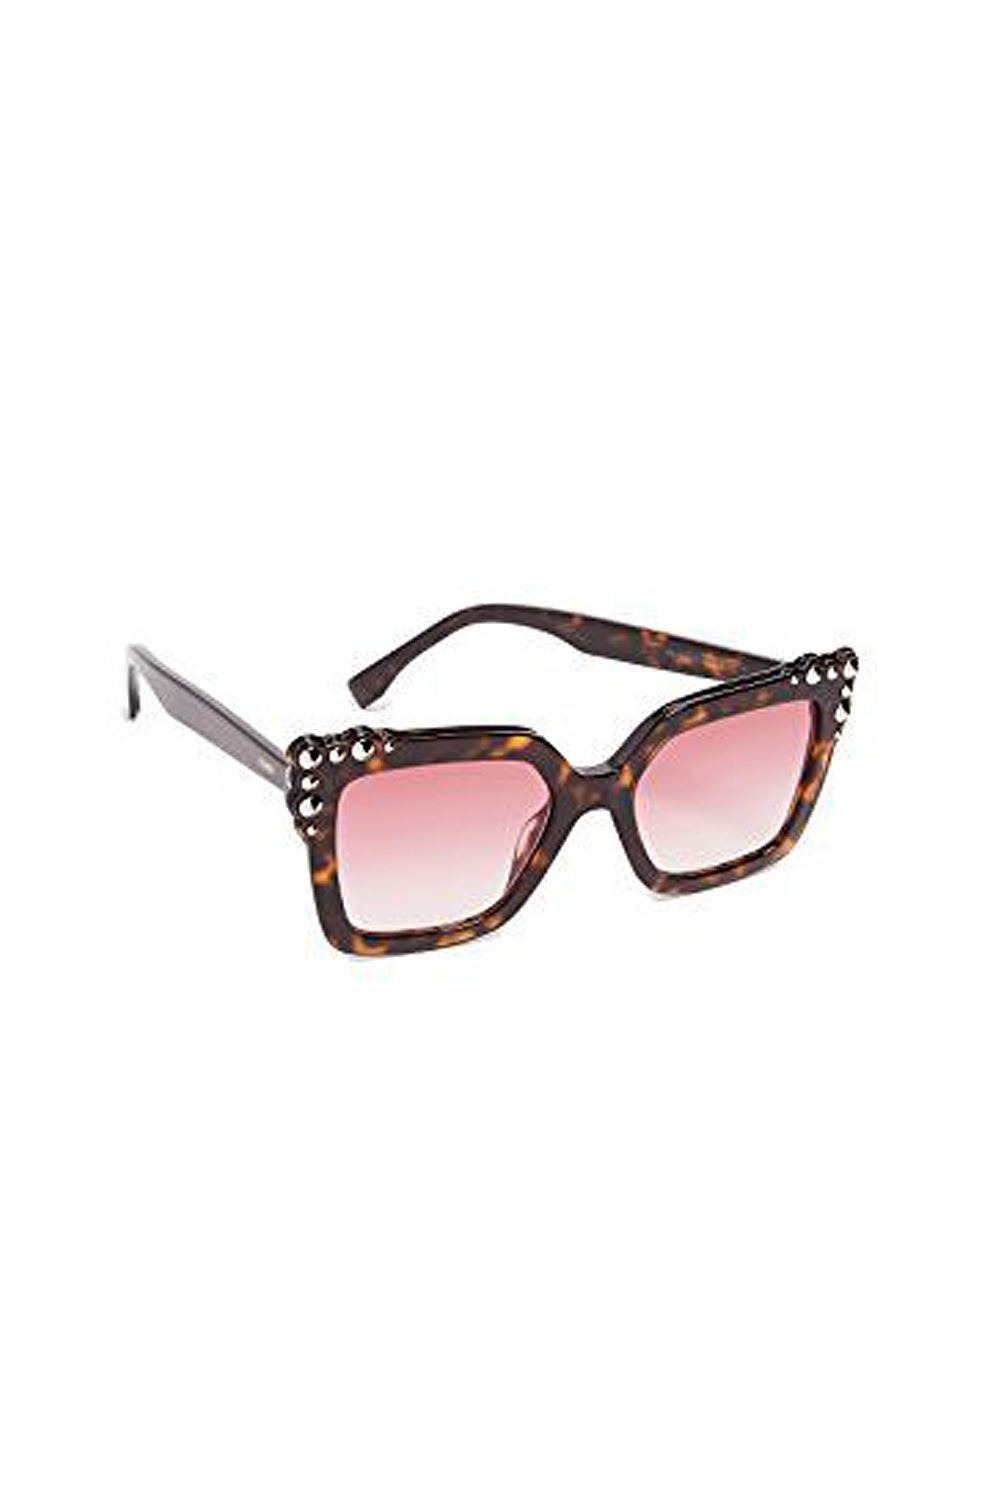 51e0ccdf7a9 32 Best Sunglasses for Women in 2018 - Affordable Sunglasses for Women